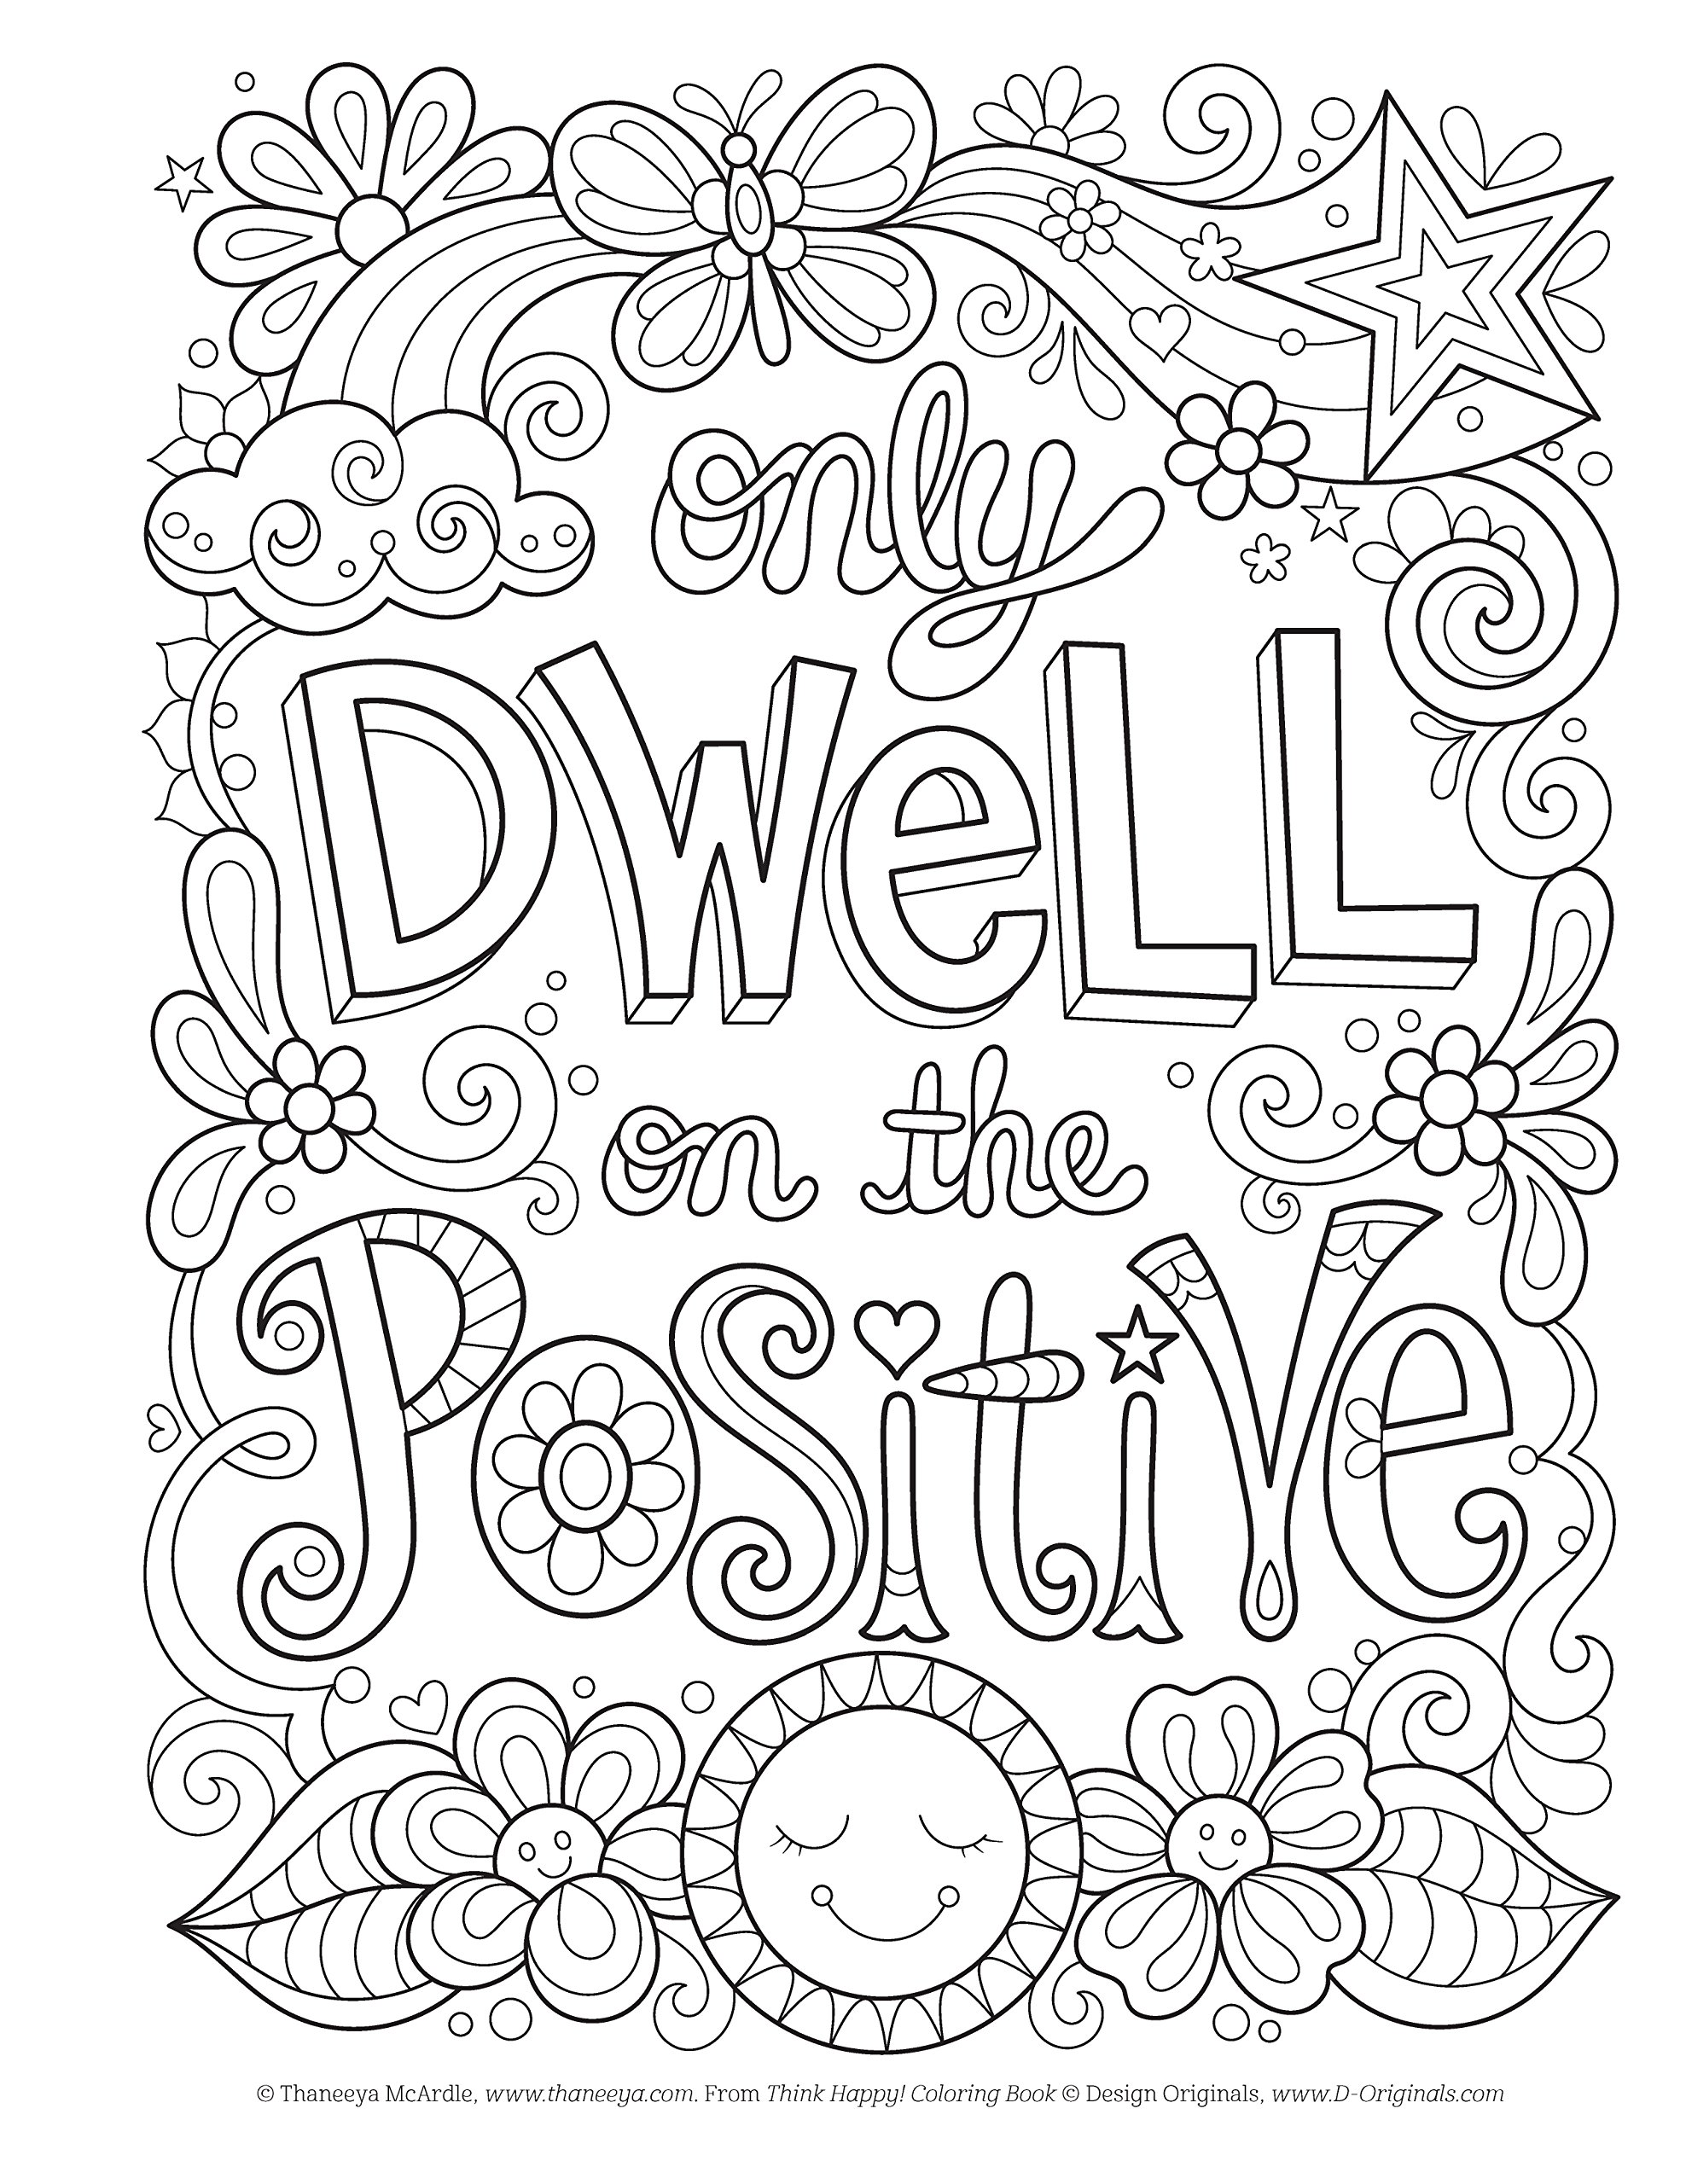 Think Happy Coloring Book Craft Pattern Color Chill Design